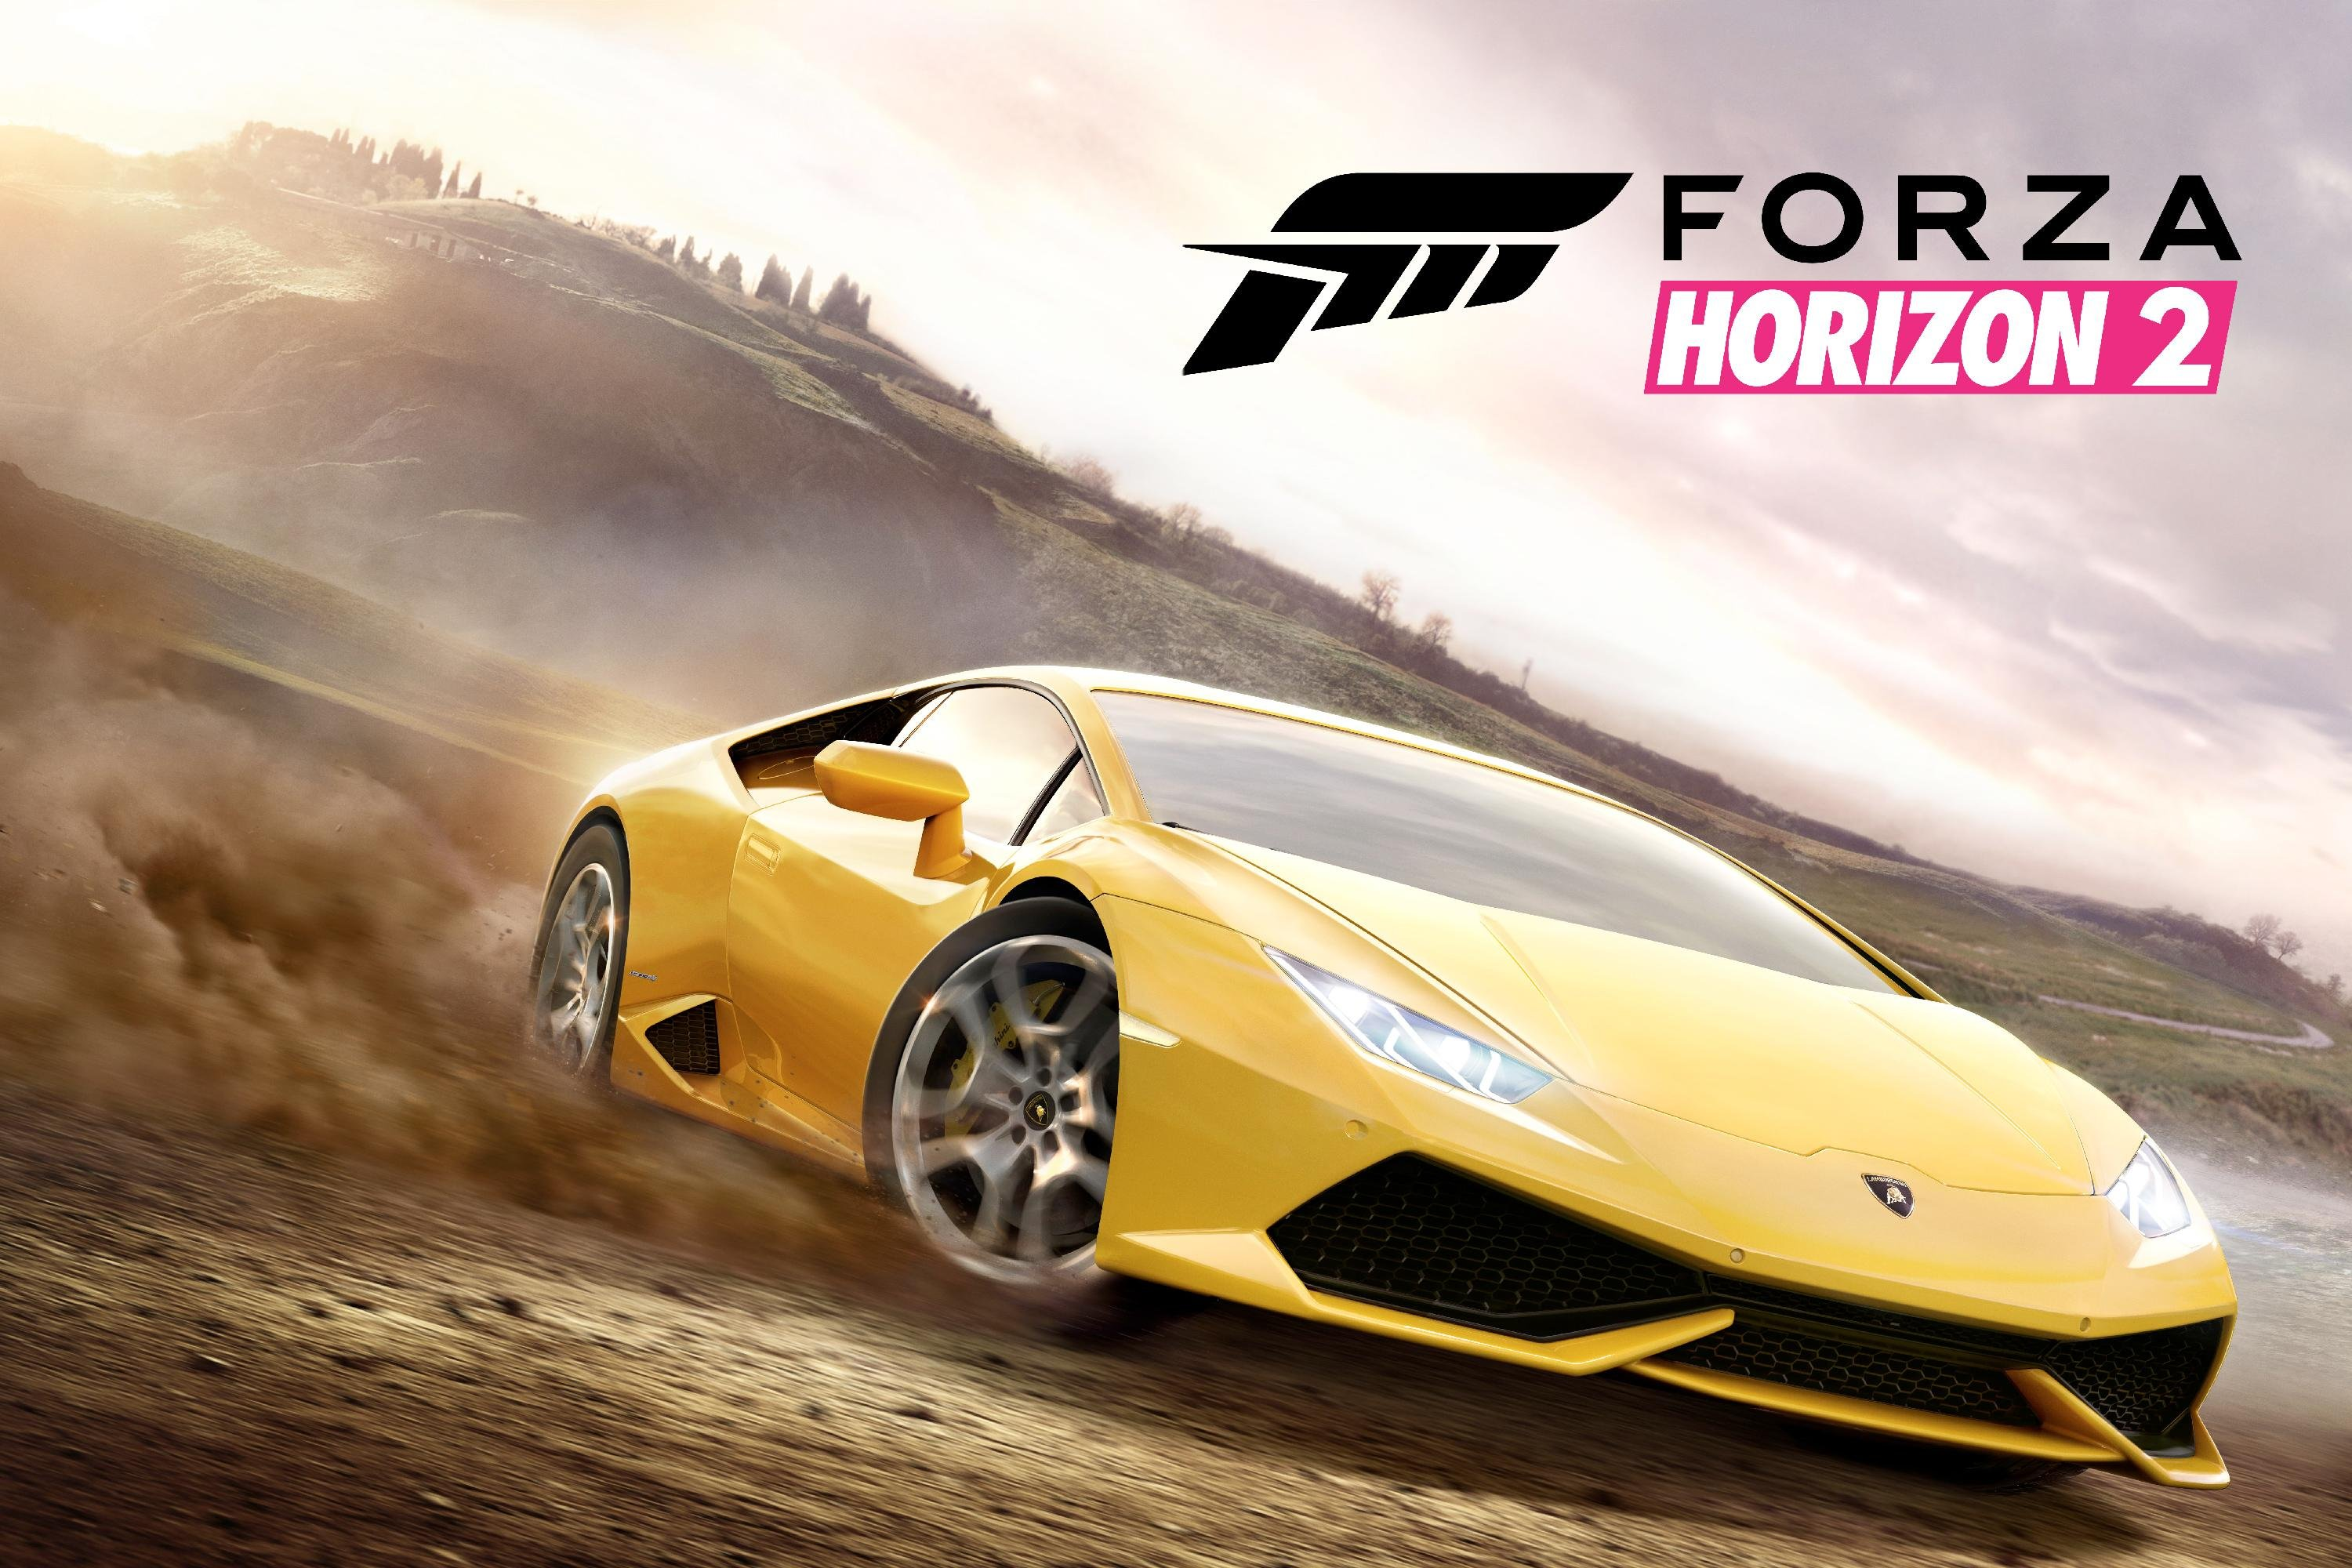 Forza Horizon 2 PC Game Download For Free Full Version